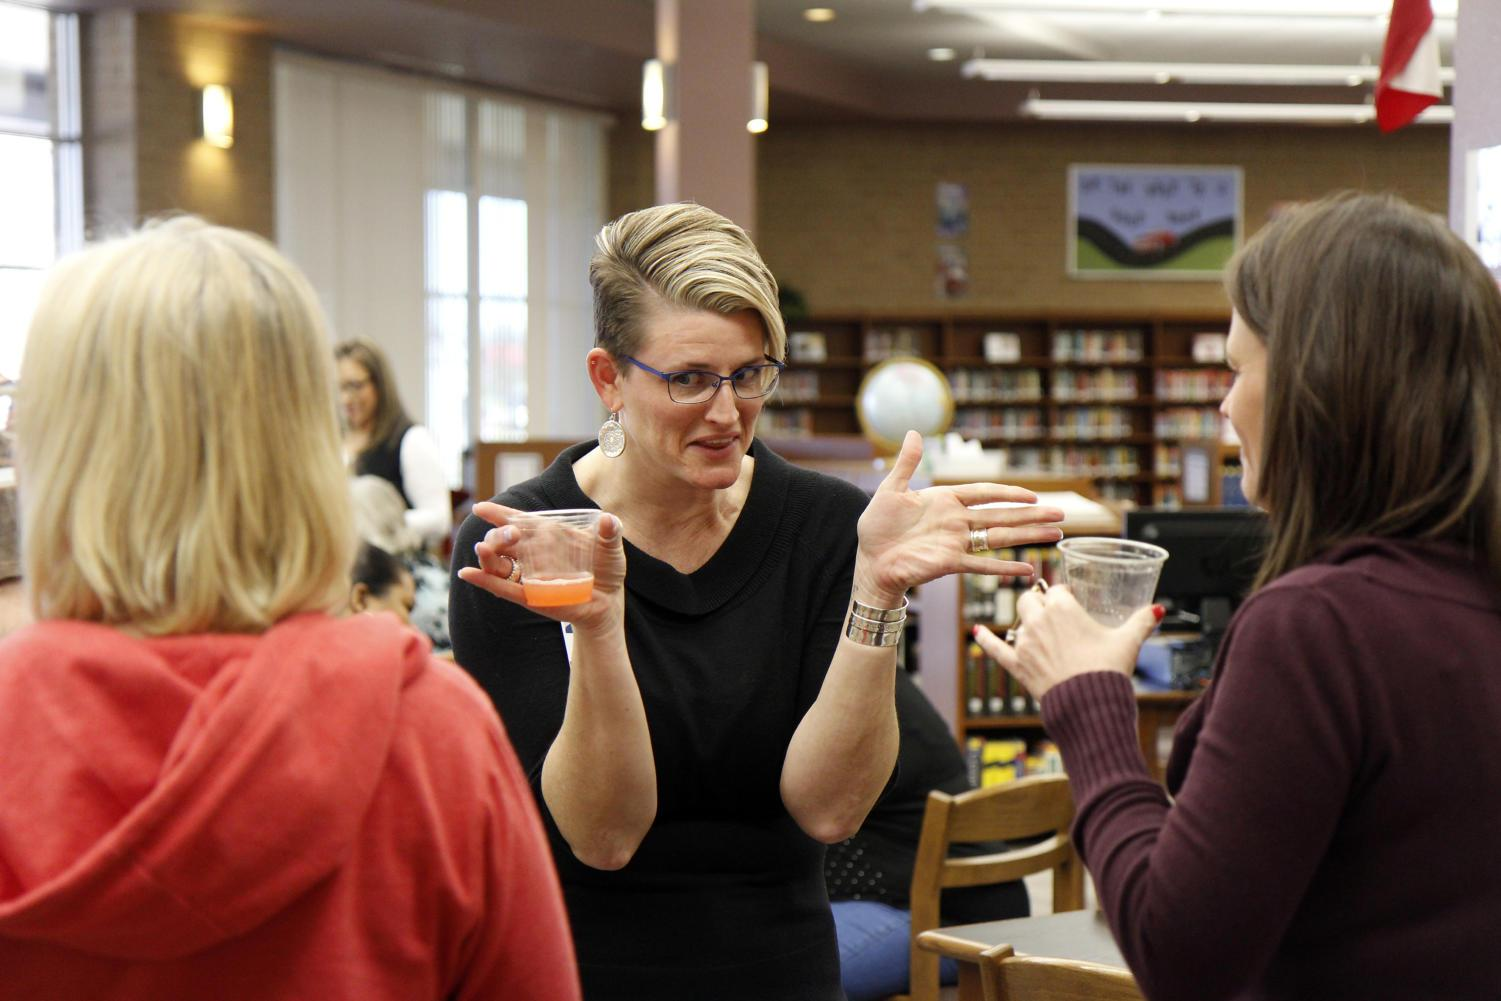 Academic Associate Principal Erin Frye celebrates at her going-away party. Ms. Frye will be leaving her job at Legacy during Spring Break to accept a Principal role at Alexander Elementary School in Duncanville, Texas